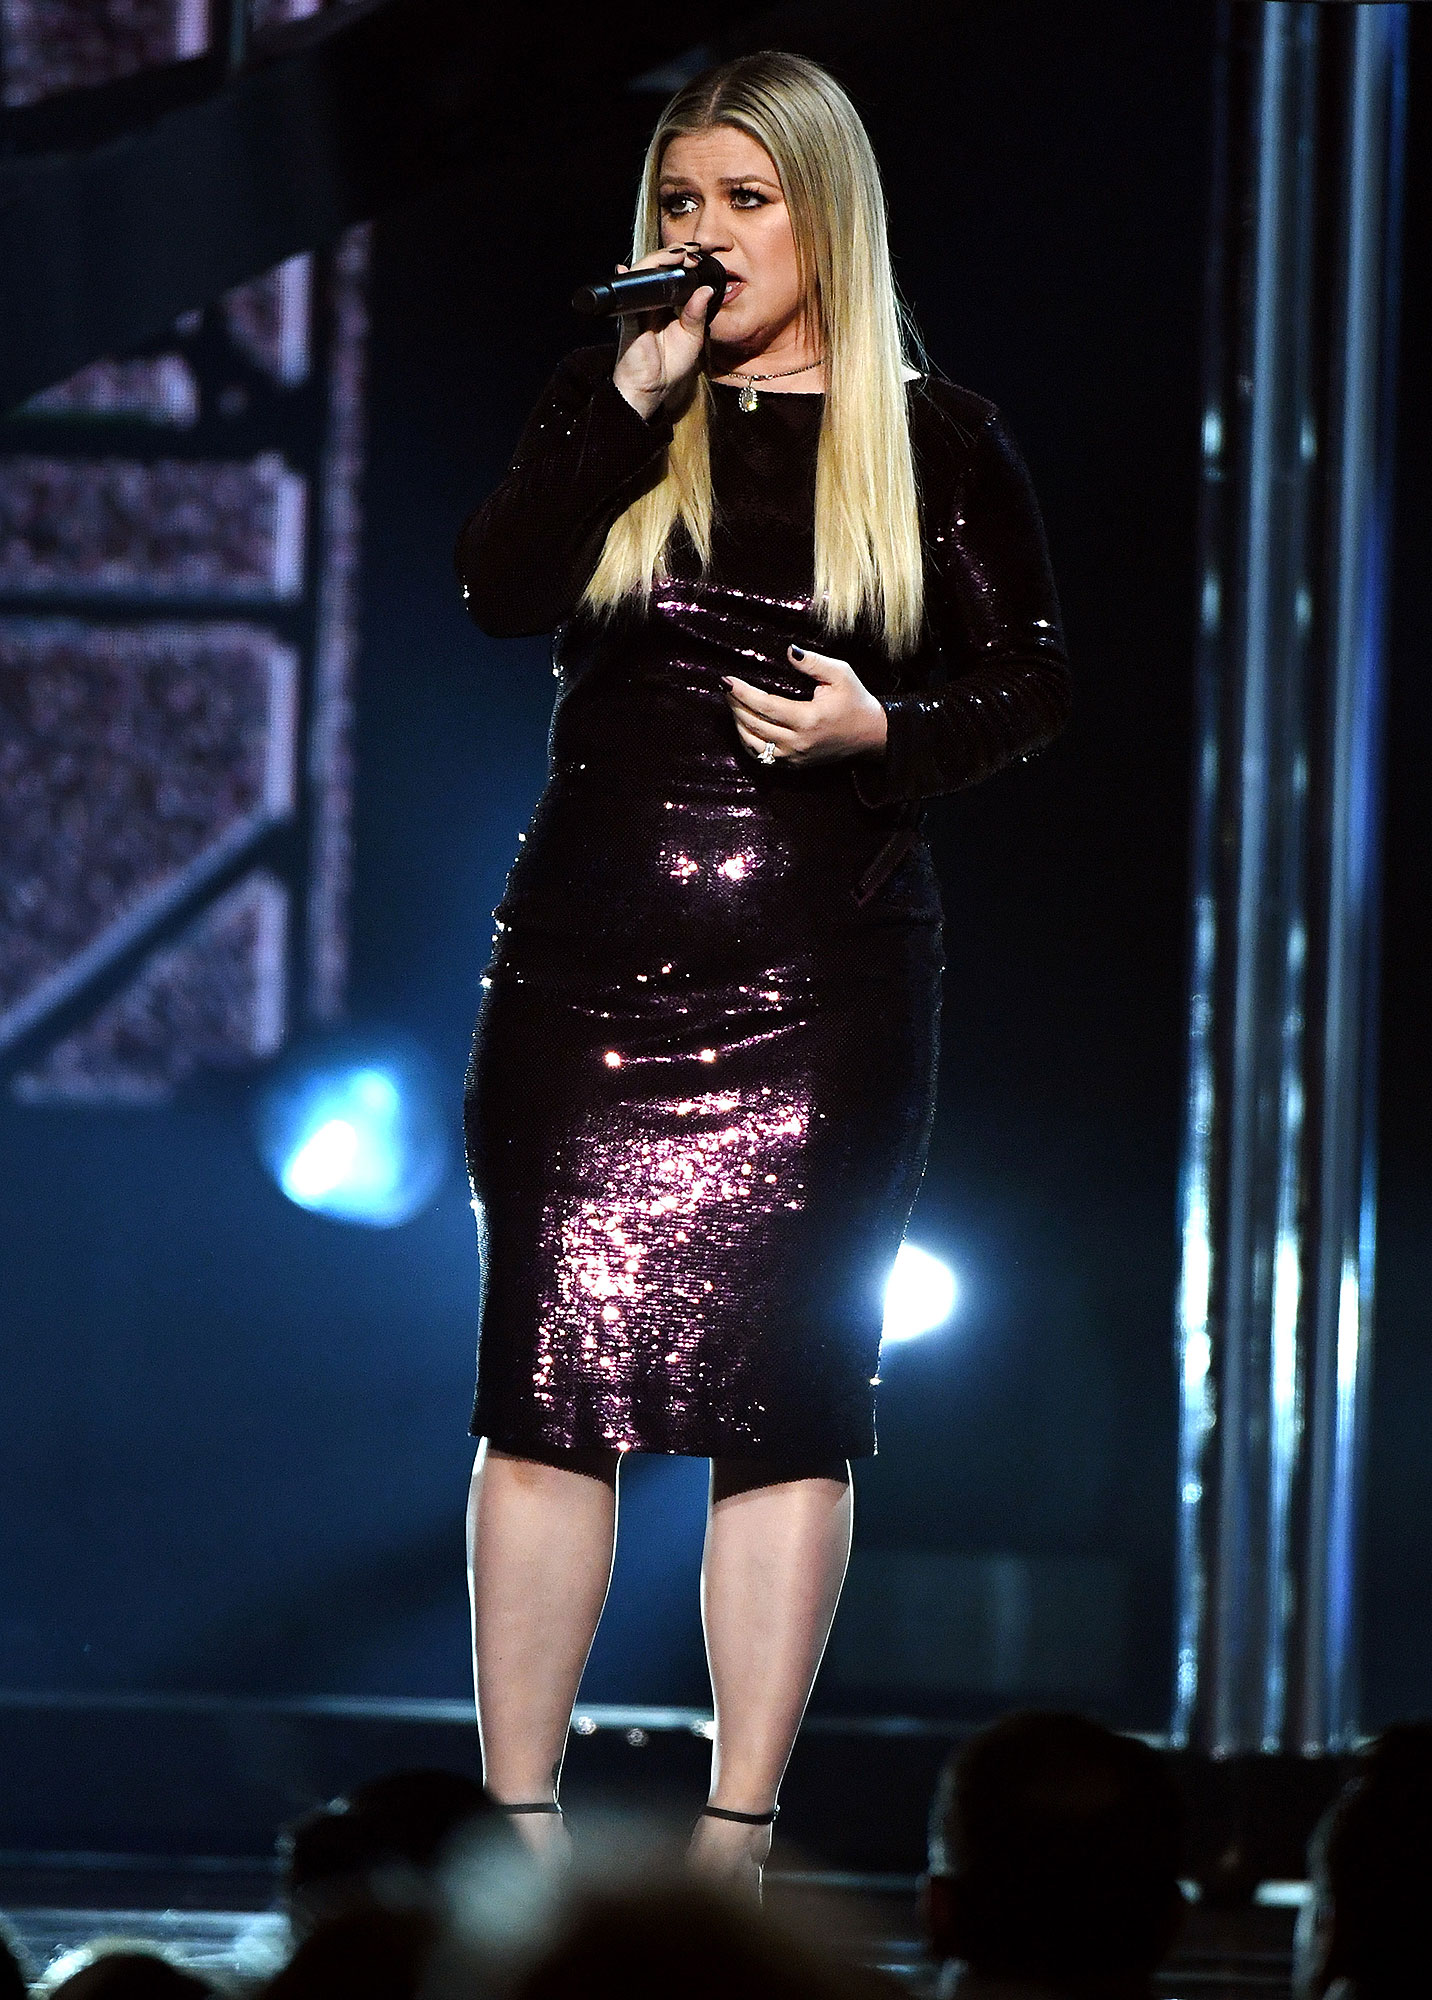 kelly-clarkson-performs.jpg